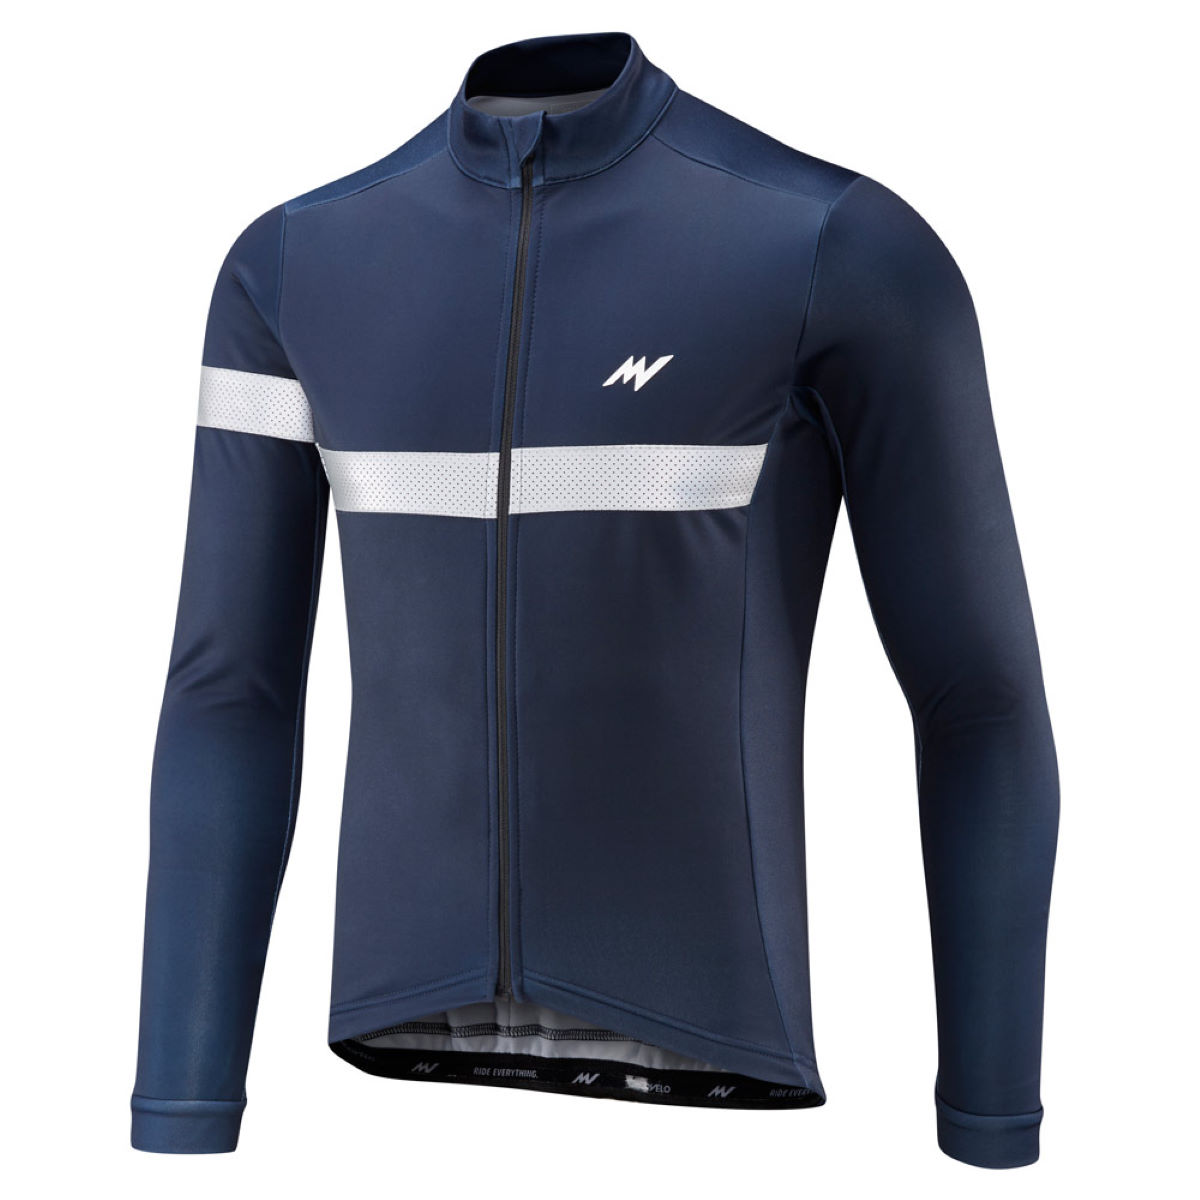 Maillot Morvelo Thermoactive (manches longues, coupe-vent) - M